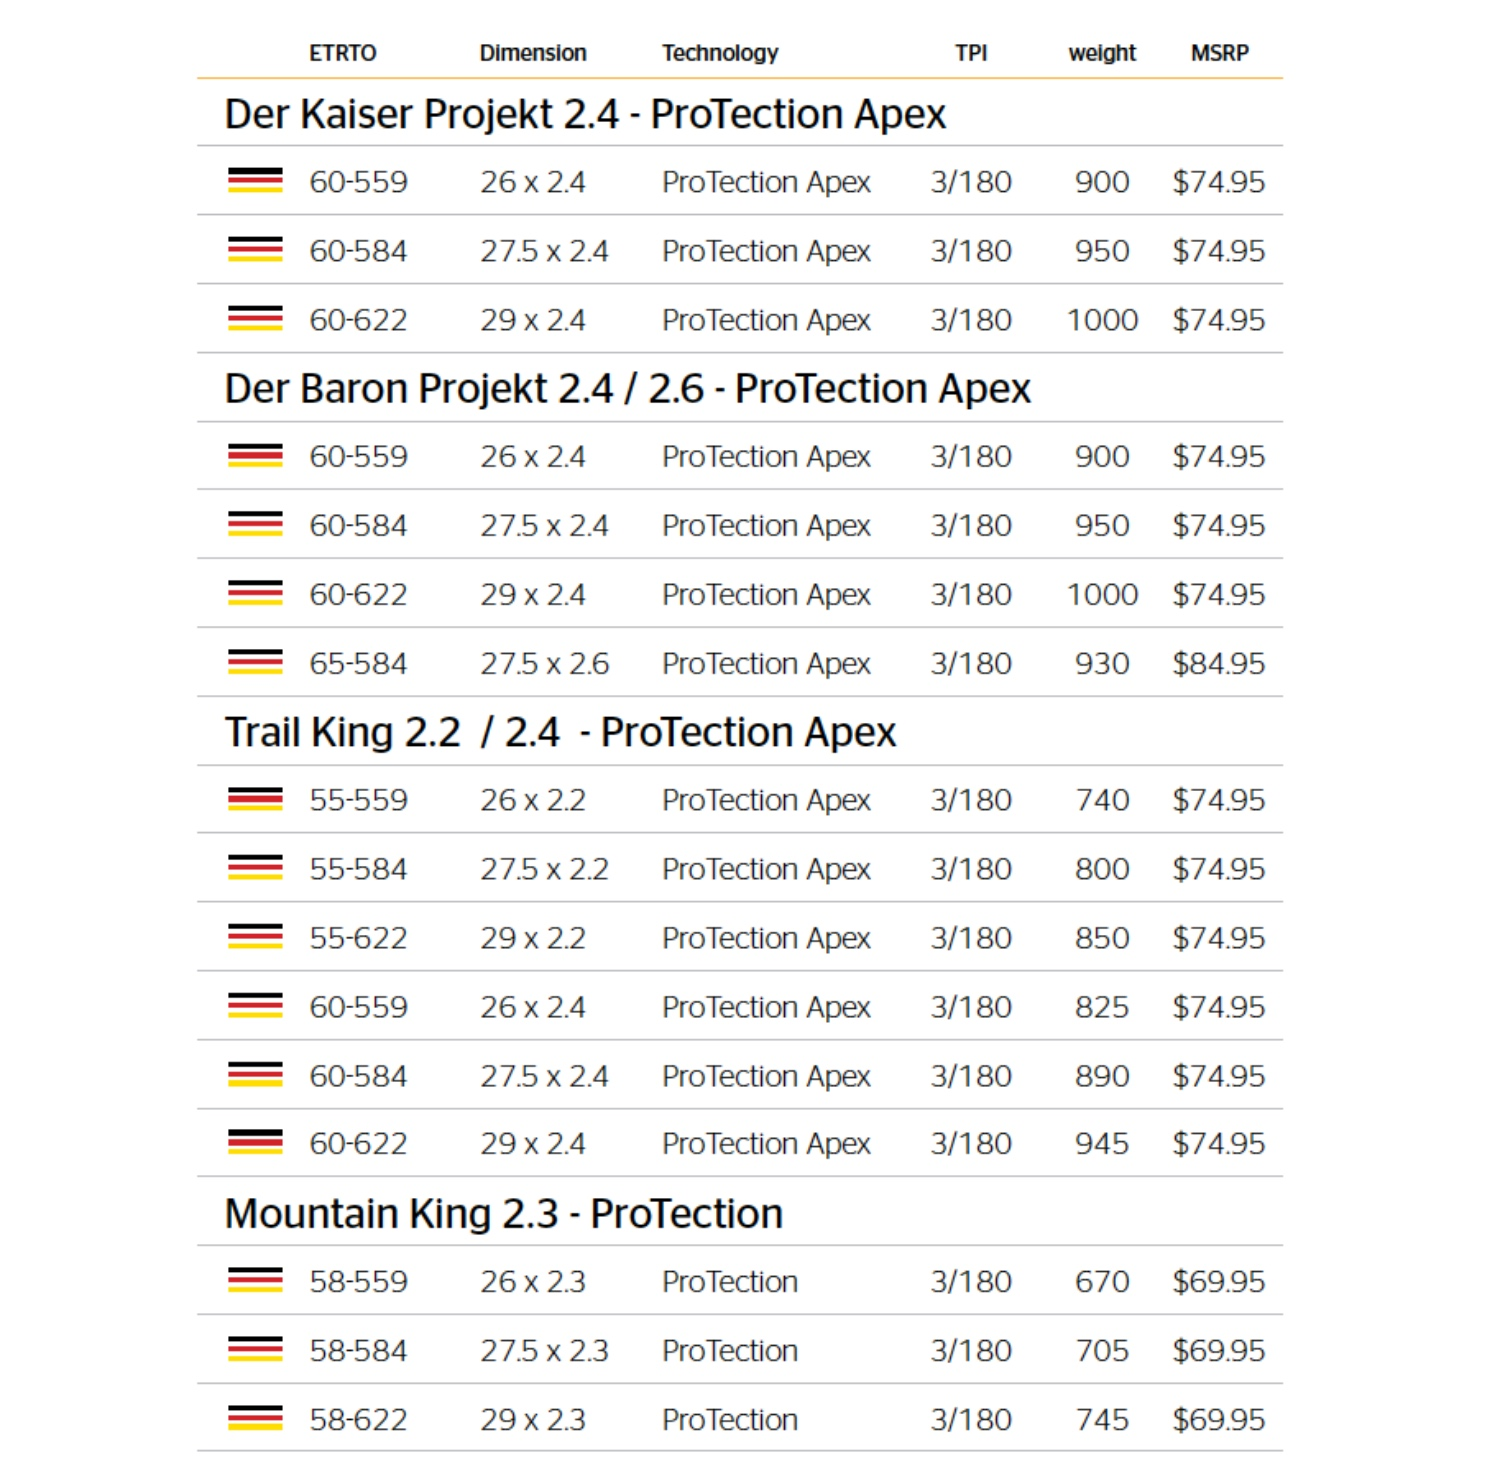 Continental King Series Pricing